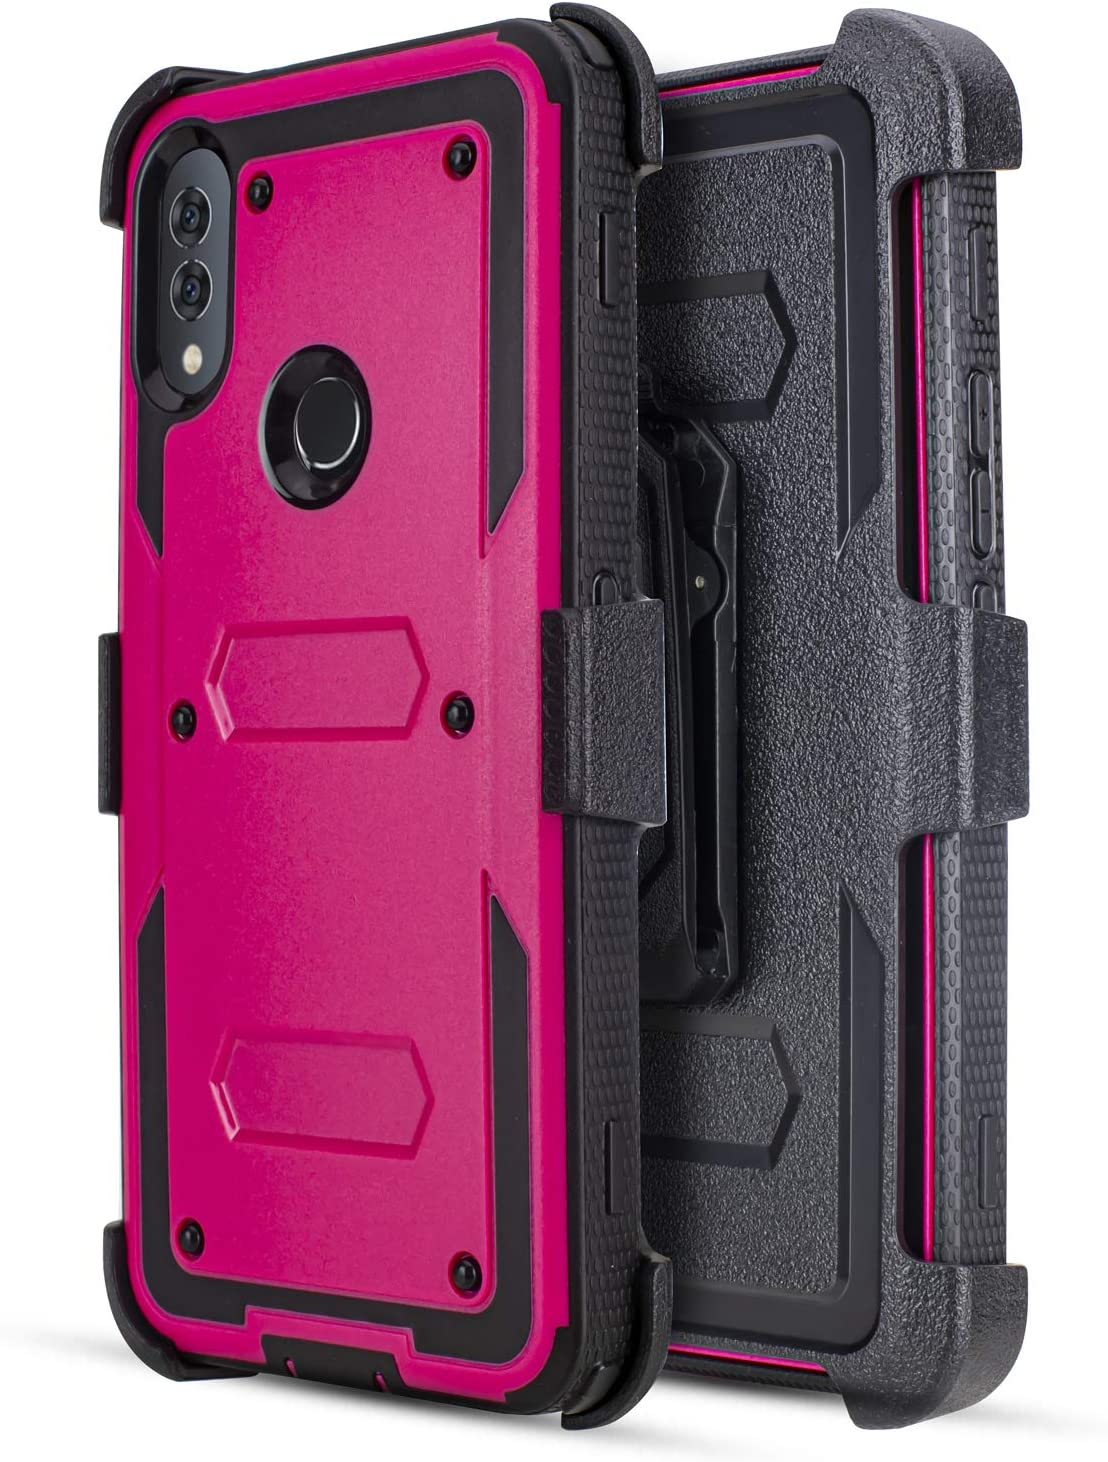 Customerfirst Case for Alcatel 3V 2019/5032W (Will Not Fit Alcatel 3V 2018), Built-in [Screen Protector] Heavy Duty Holster Cover [Belt Clip][Kickstand] (Pink)